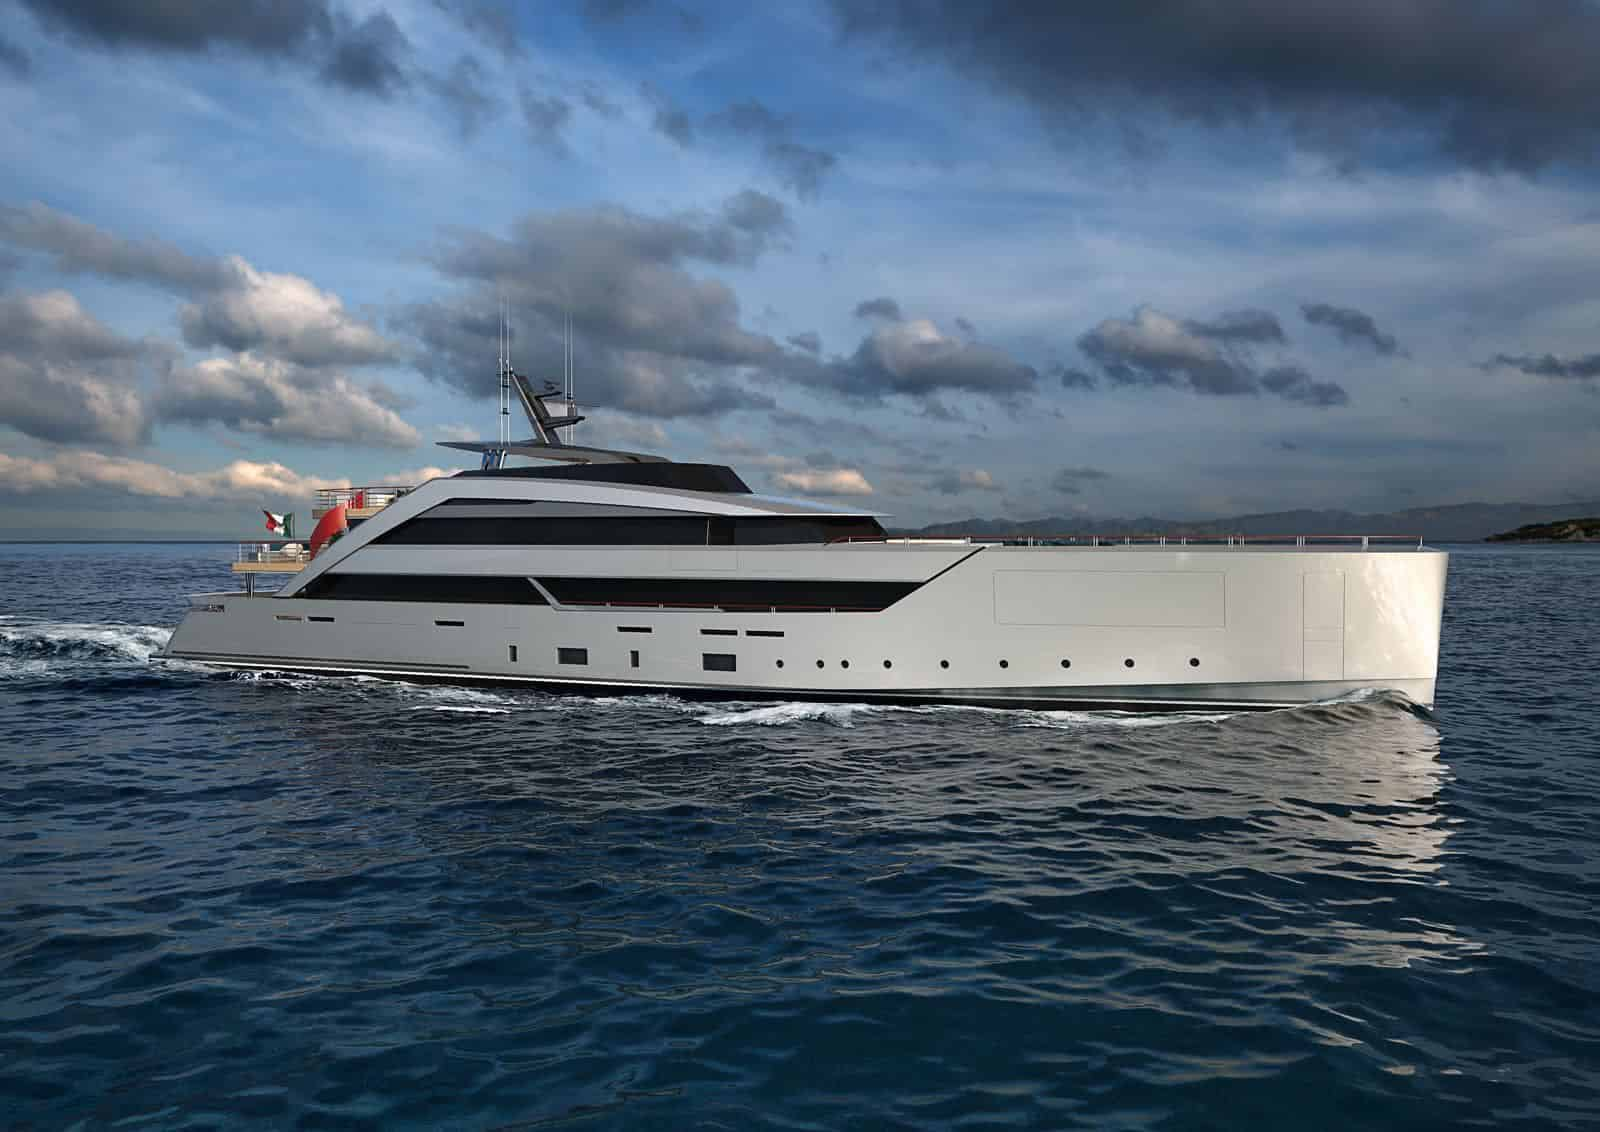 Luca Vallebona unveils a Spectacular 62m Yacht Concept called GRAVITY